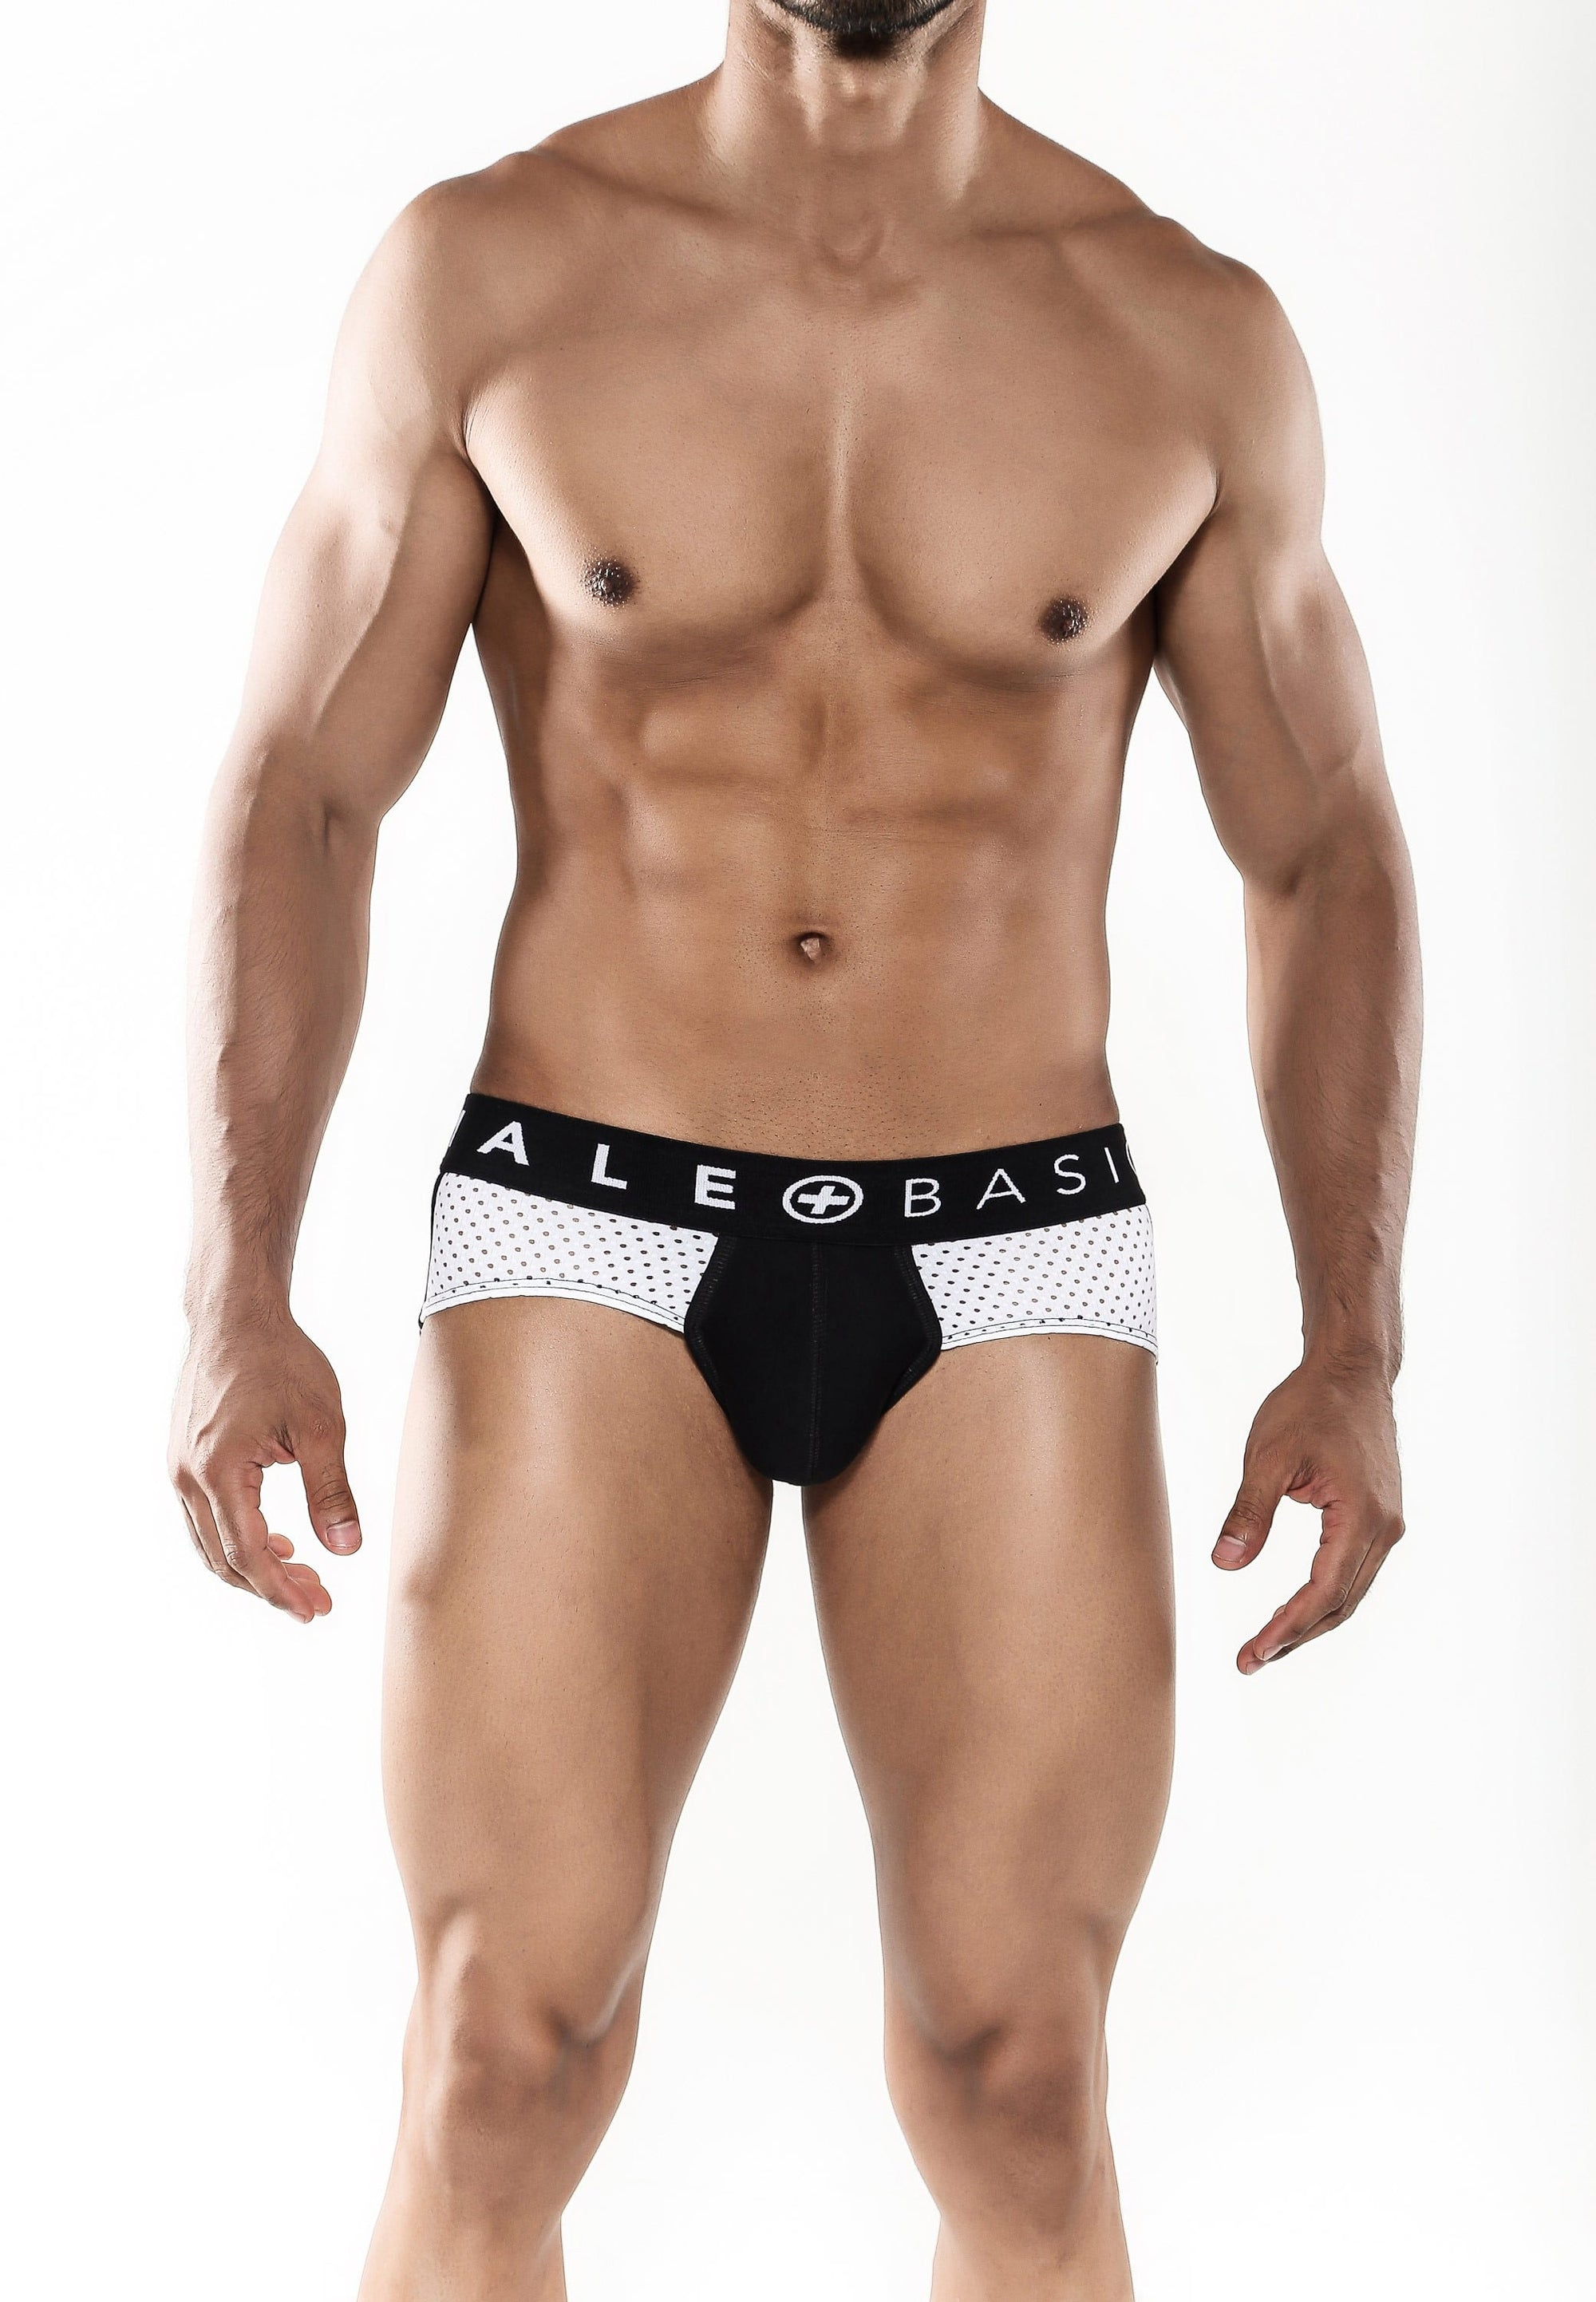 MaleBasics Underwear Malebasics Spot Men's Black Brief Men's Sexy Underwear